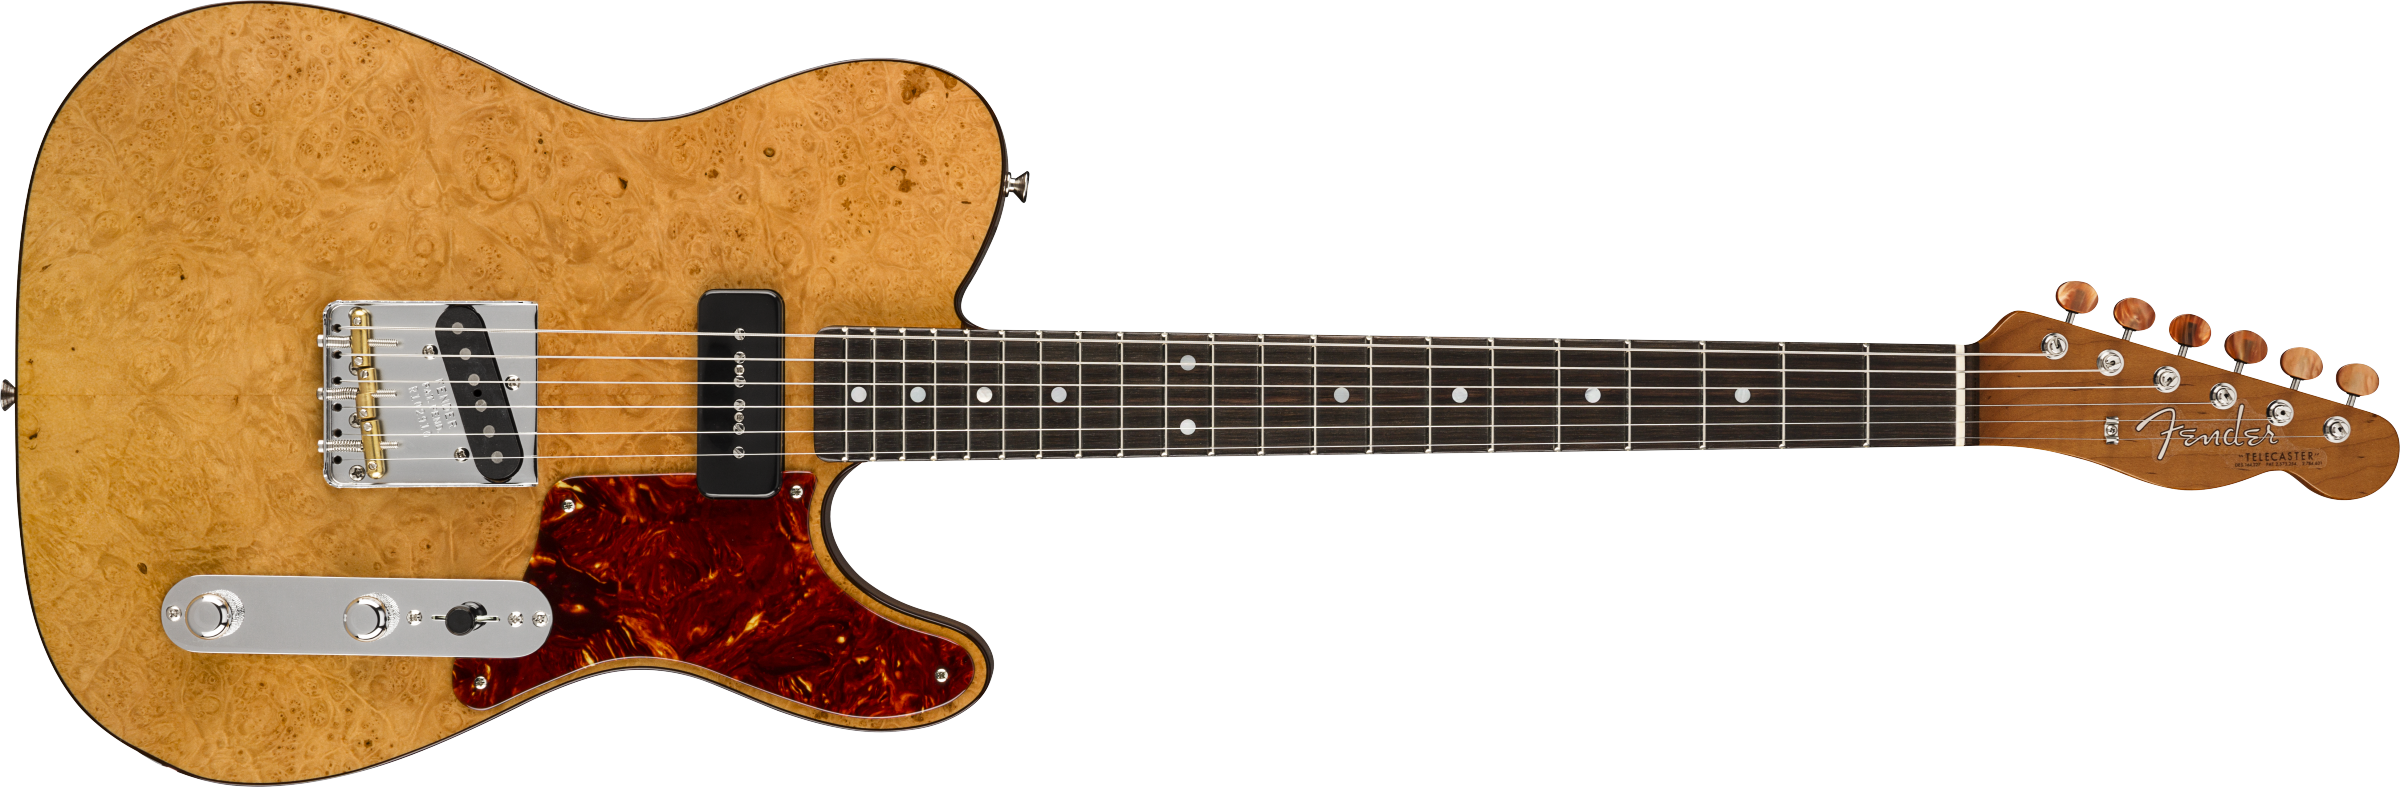 FENDER-Artisan-P90-Maple-Burl-Telecaster-Fiji-Mahogany-Body-with-AAAA-Figured-Maple-Burl-Top-Ebony-Fingerboard-Aged-Natural-sku-571005168